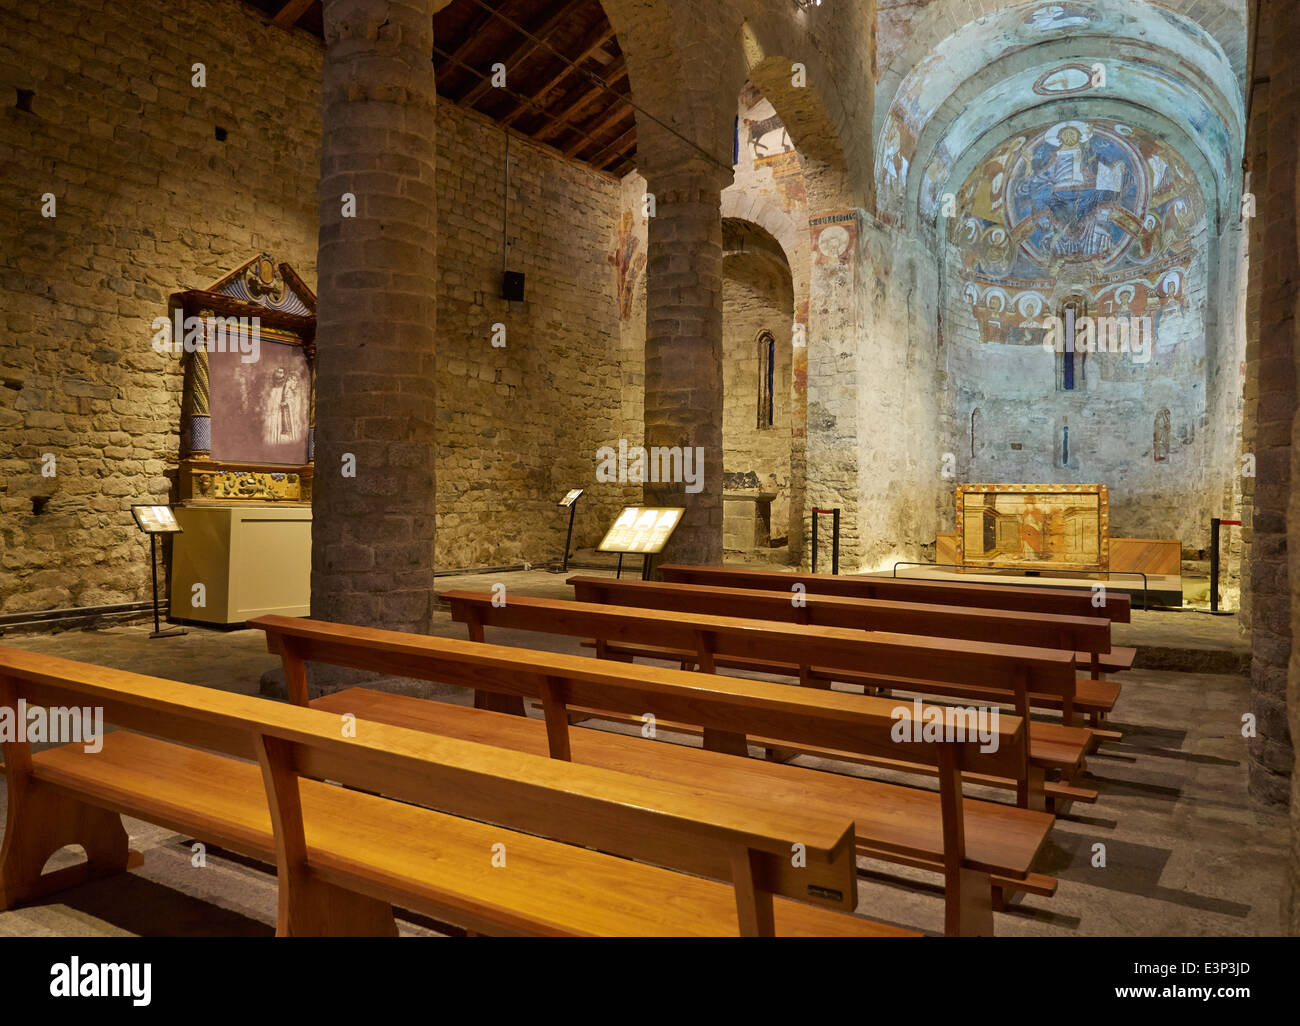 Sant Climent de Taull, Vall de Boi, Catalonia, Spain. Church interior. - Stock Image